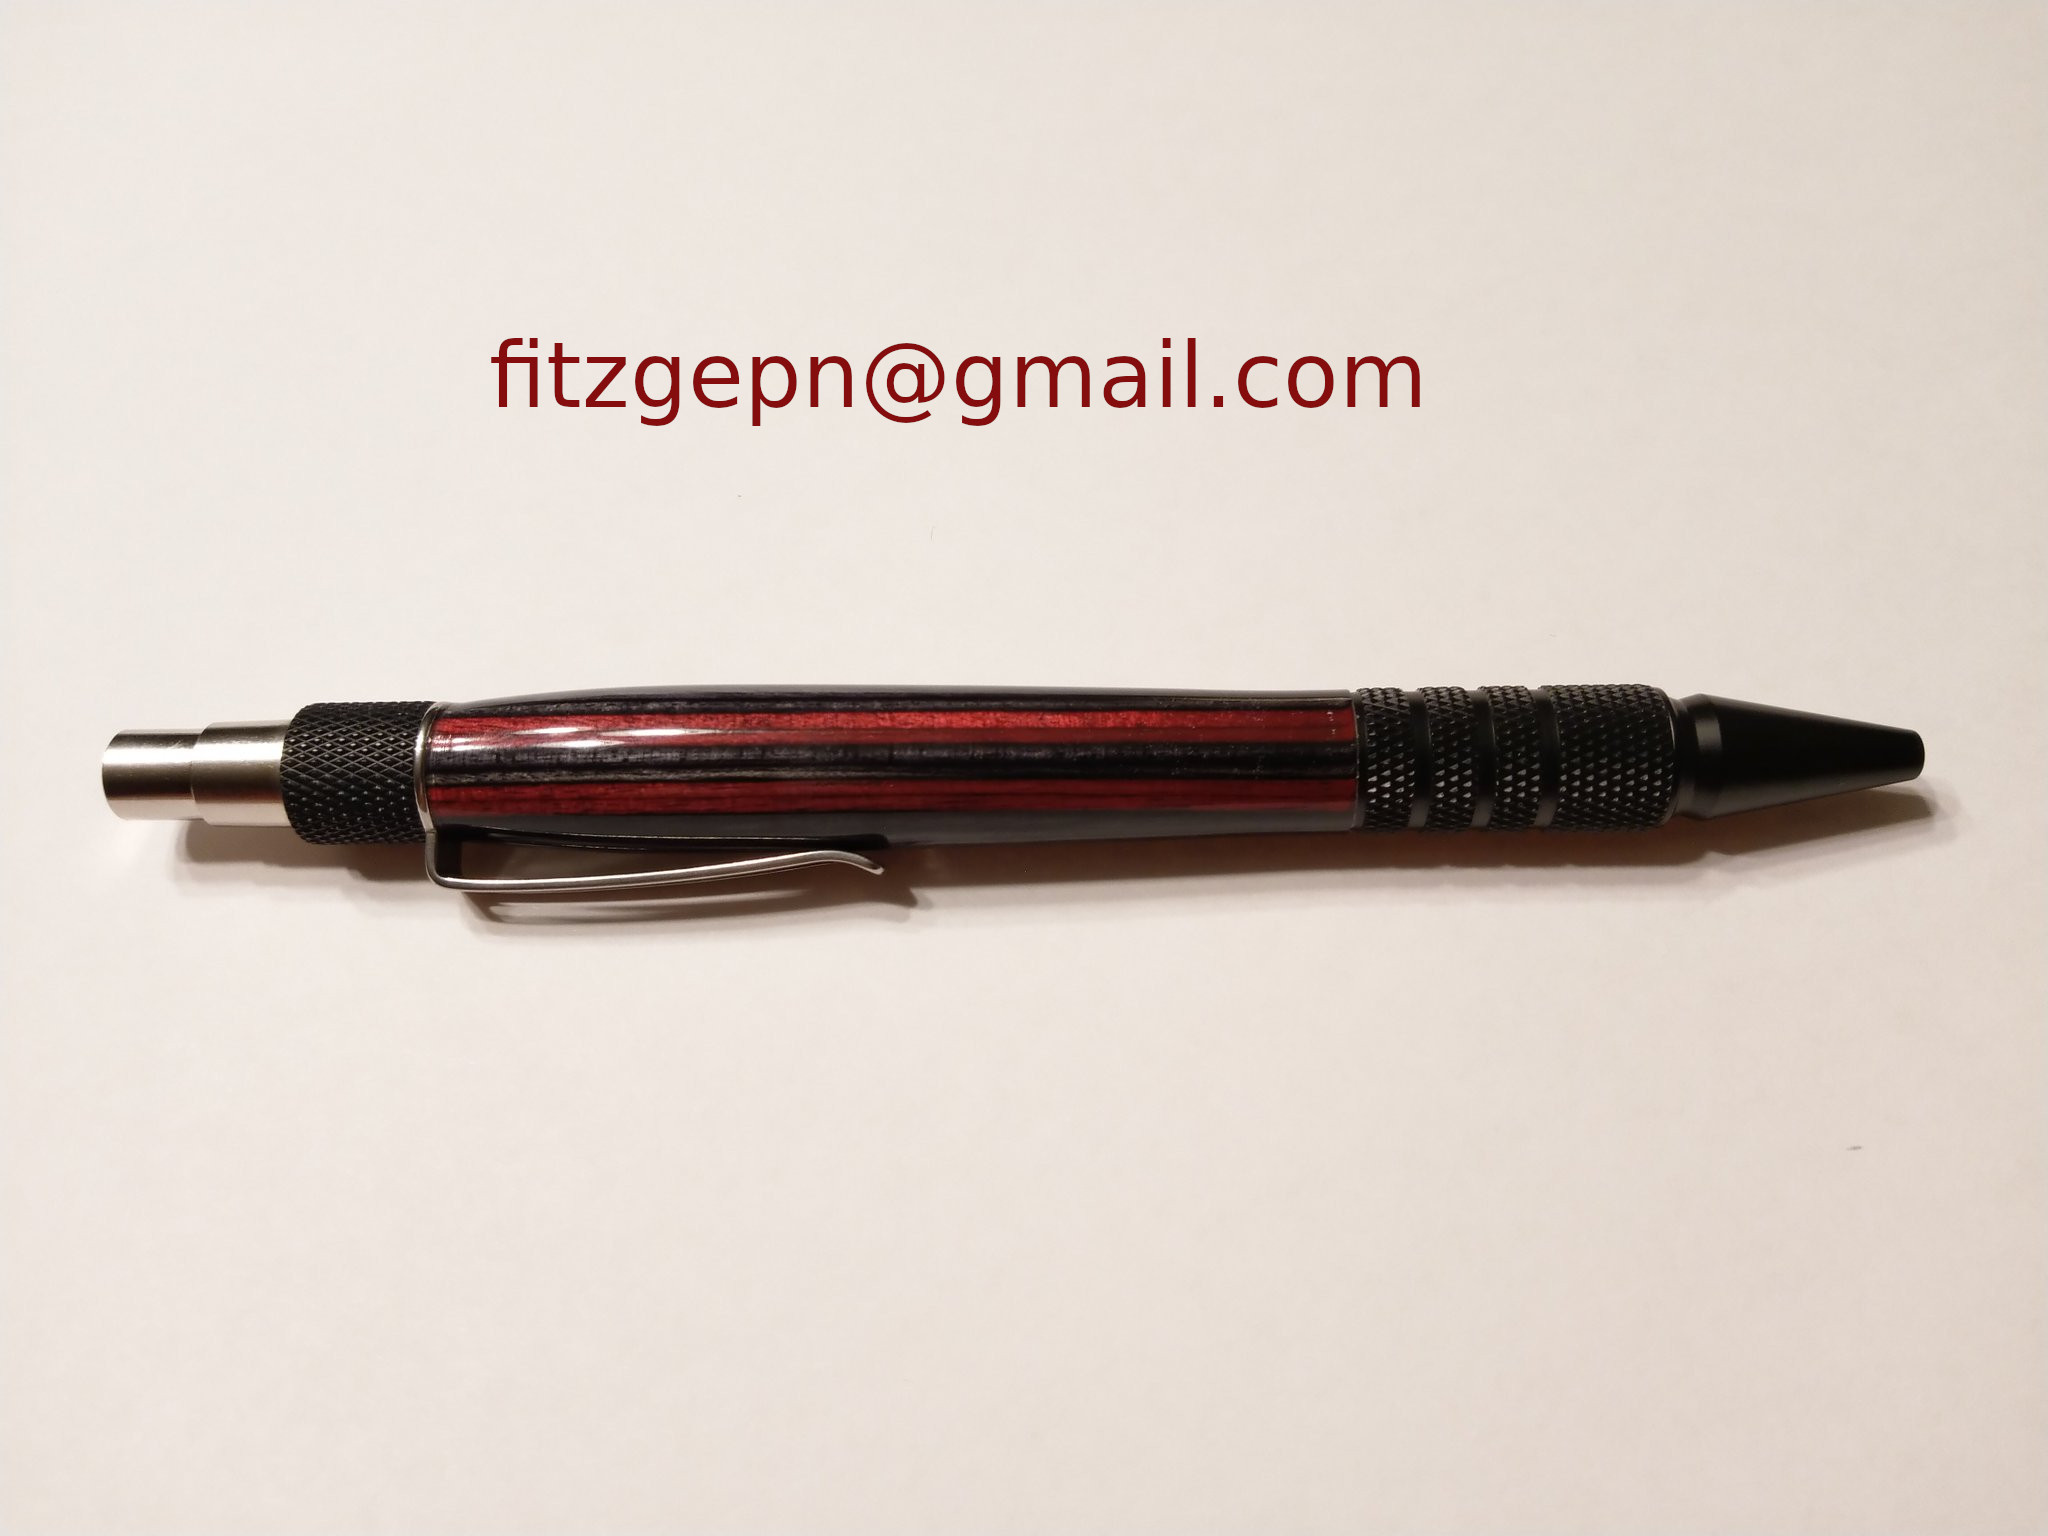 Frogwood Red/Black pen by Patrick Fitzgerald - limited edition color available on request